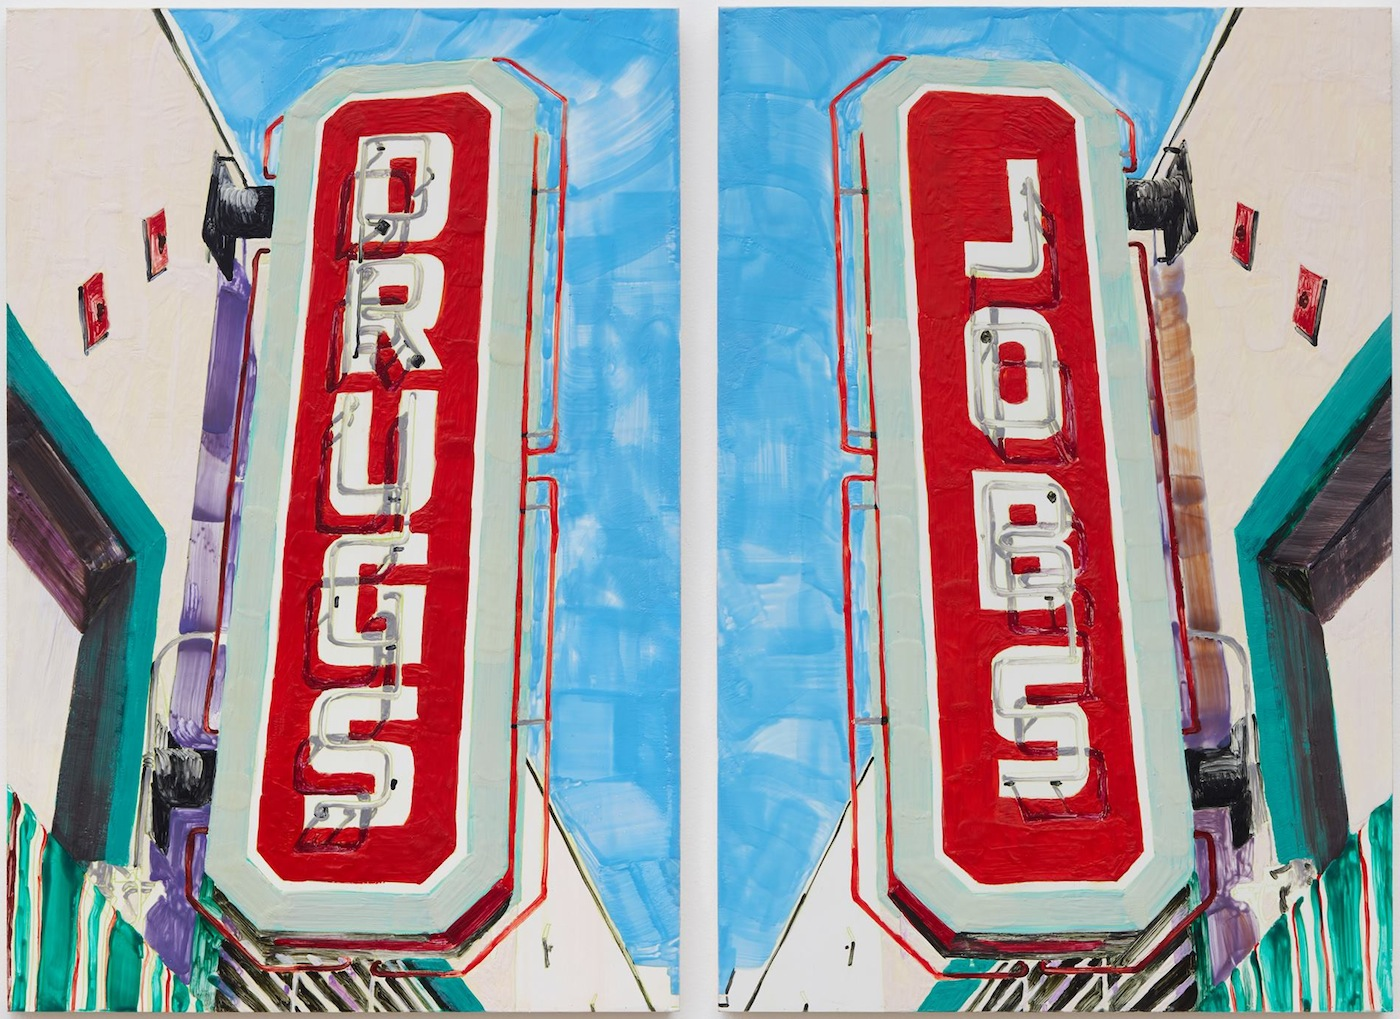 """Katie Herzog with Andrew Choate, """"DRUGS/JOBS"""" (2015), Encaustic on panel, 36 by 48 inches (via facebook)"""